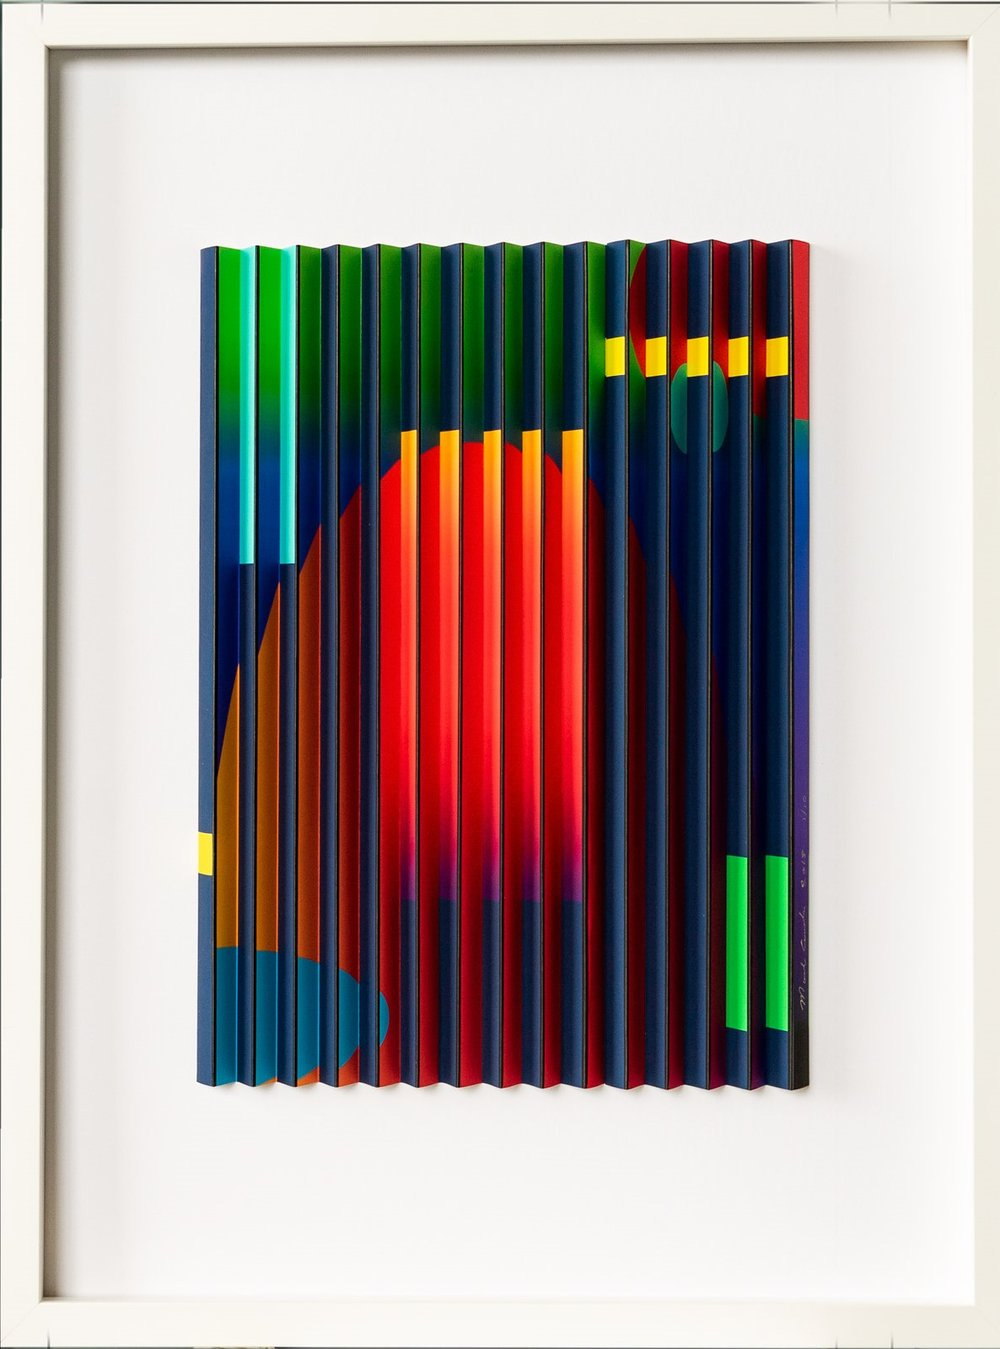 Geospace 4  Mark Cowden, limited edition multiplane work, 490mm x 640mm inc frame  sold